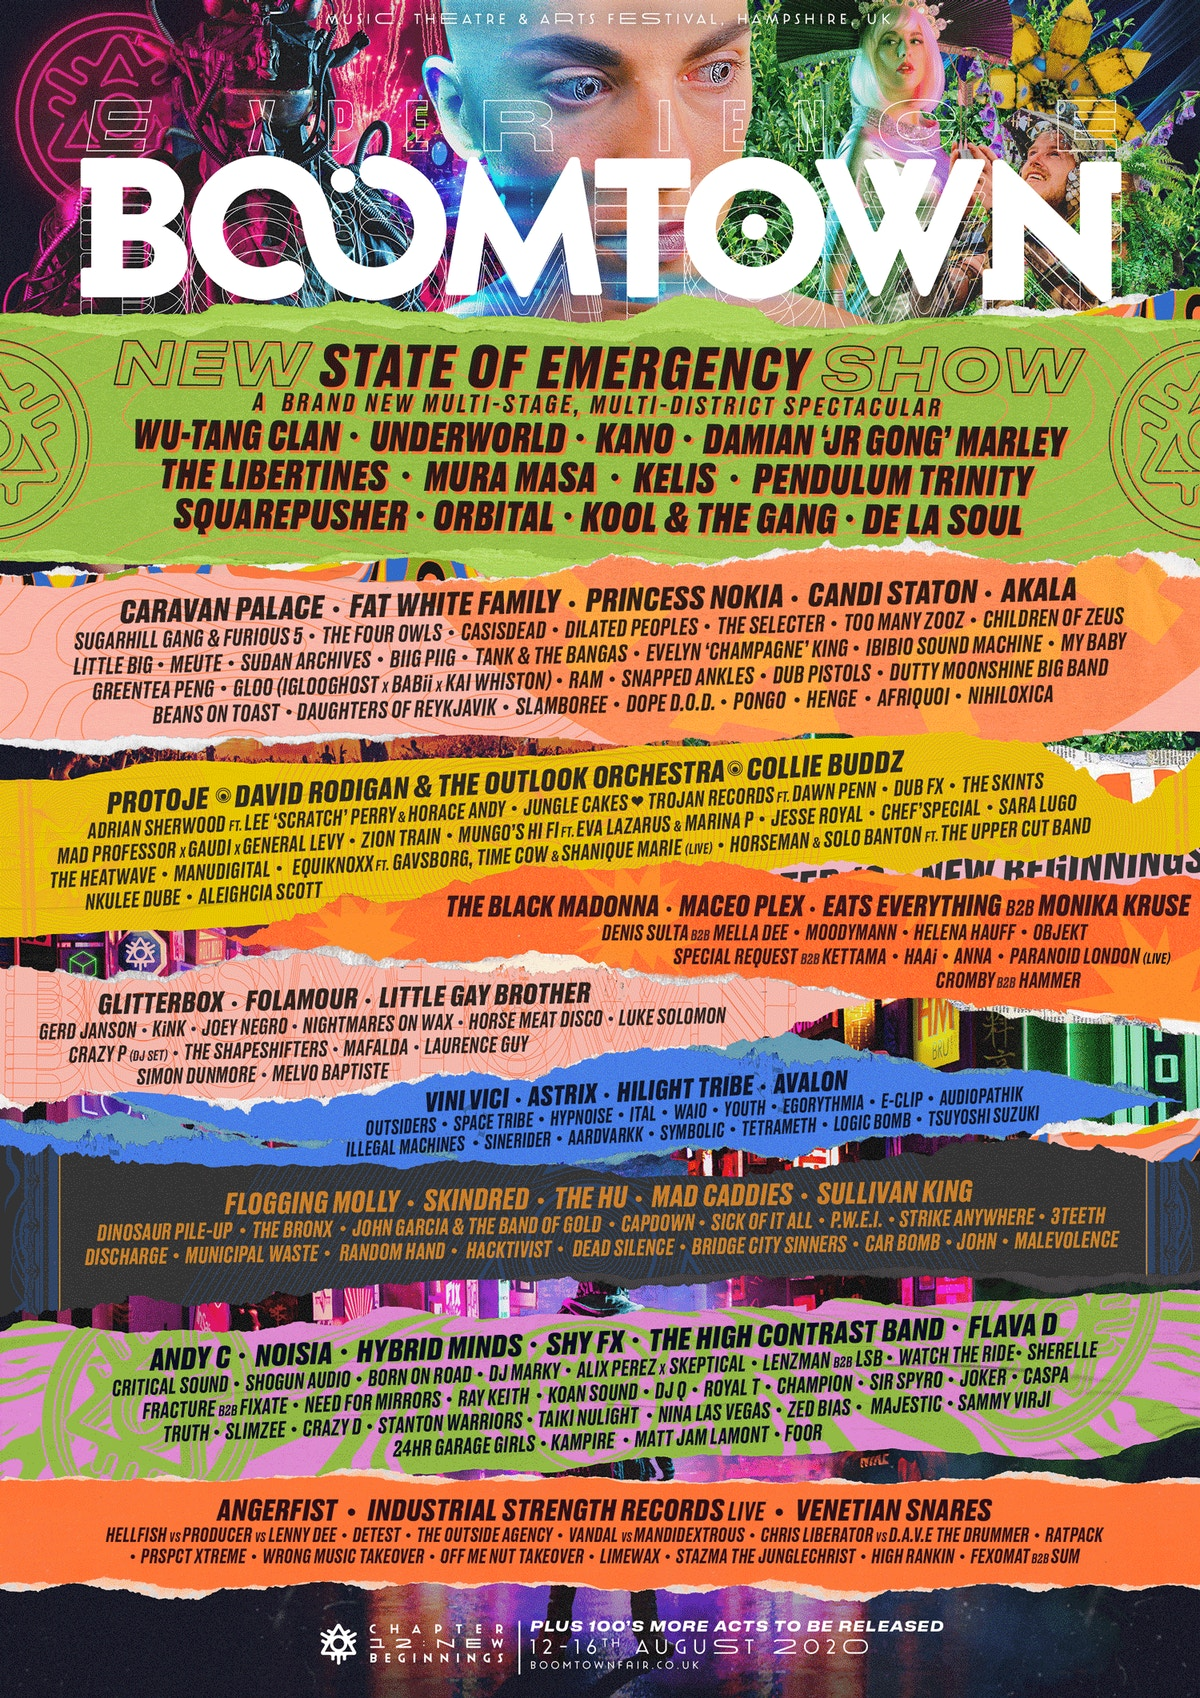 Lineup | Boomtown Chapter 12 New Beginnings 12th 16th